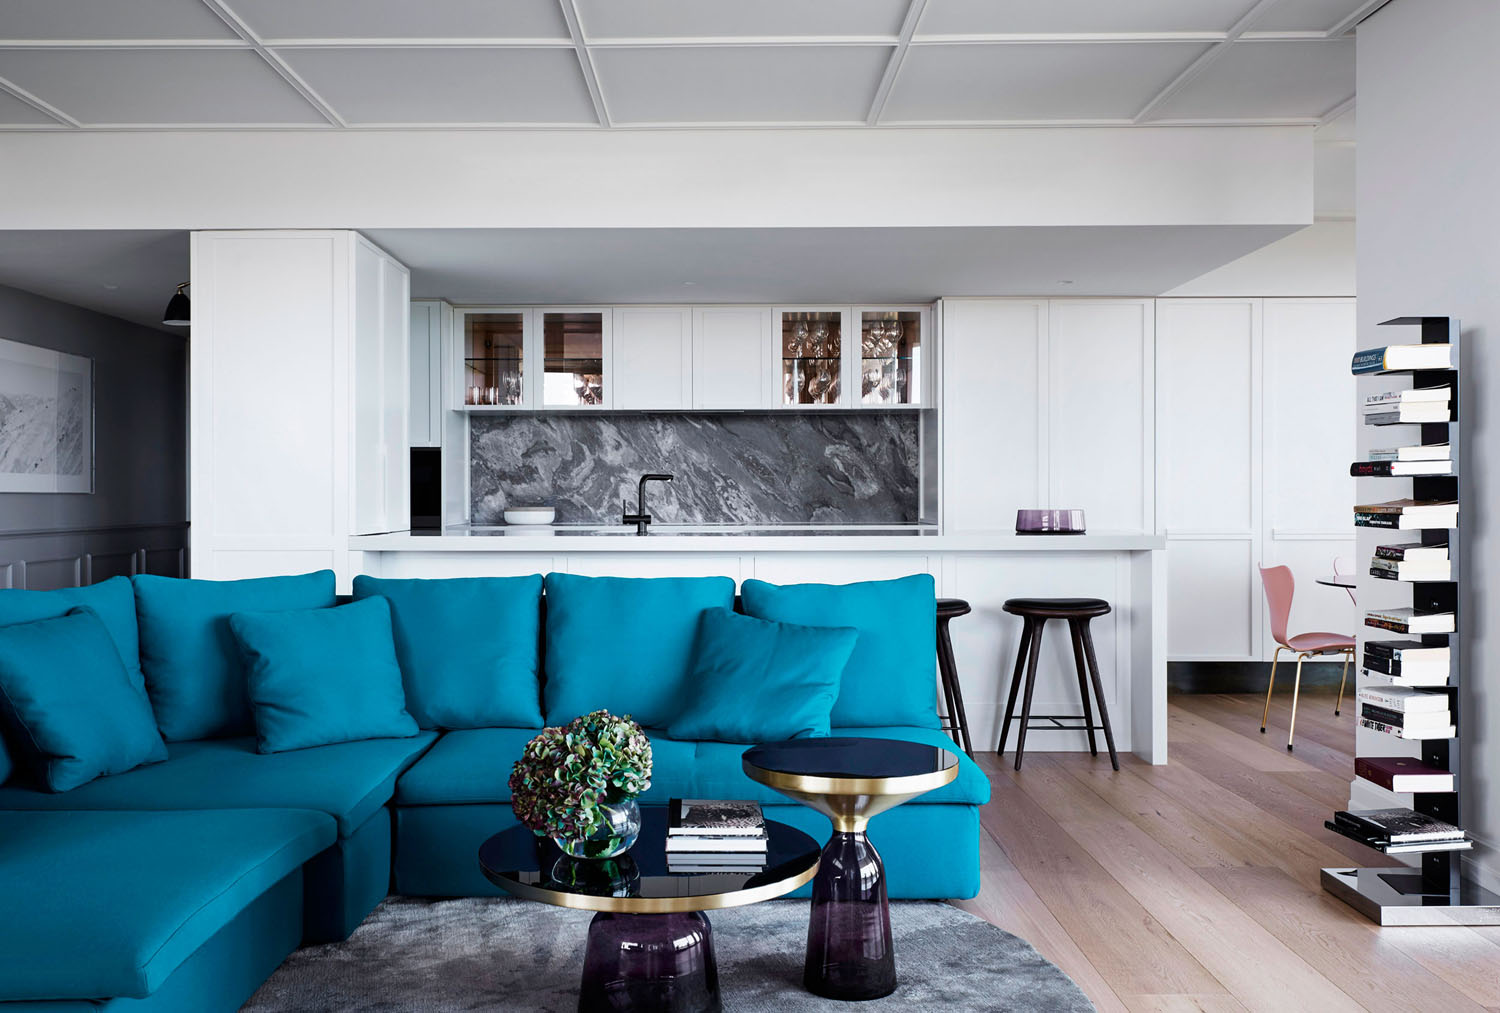 penthouse furniture. The Understated Luxury Of A Refreshed Modern Penthouse Furniture